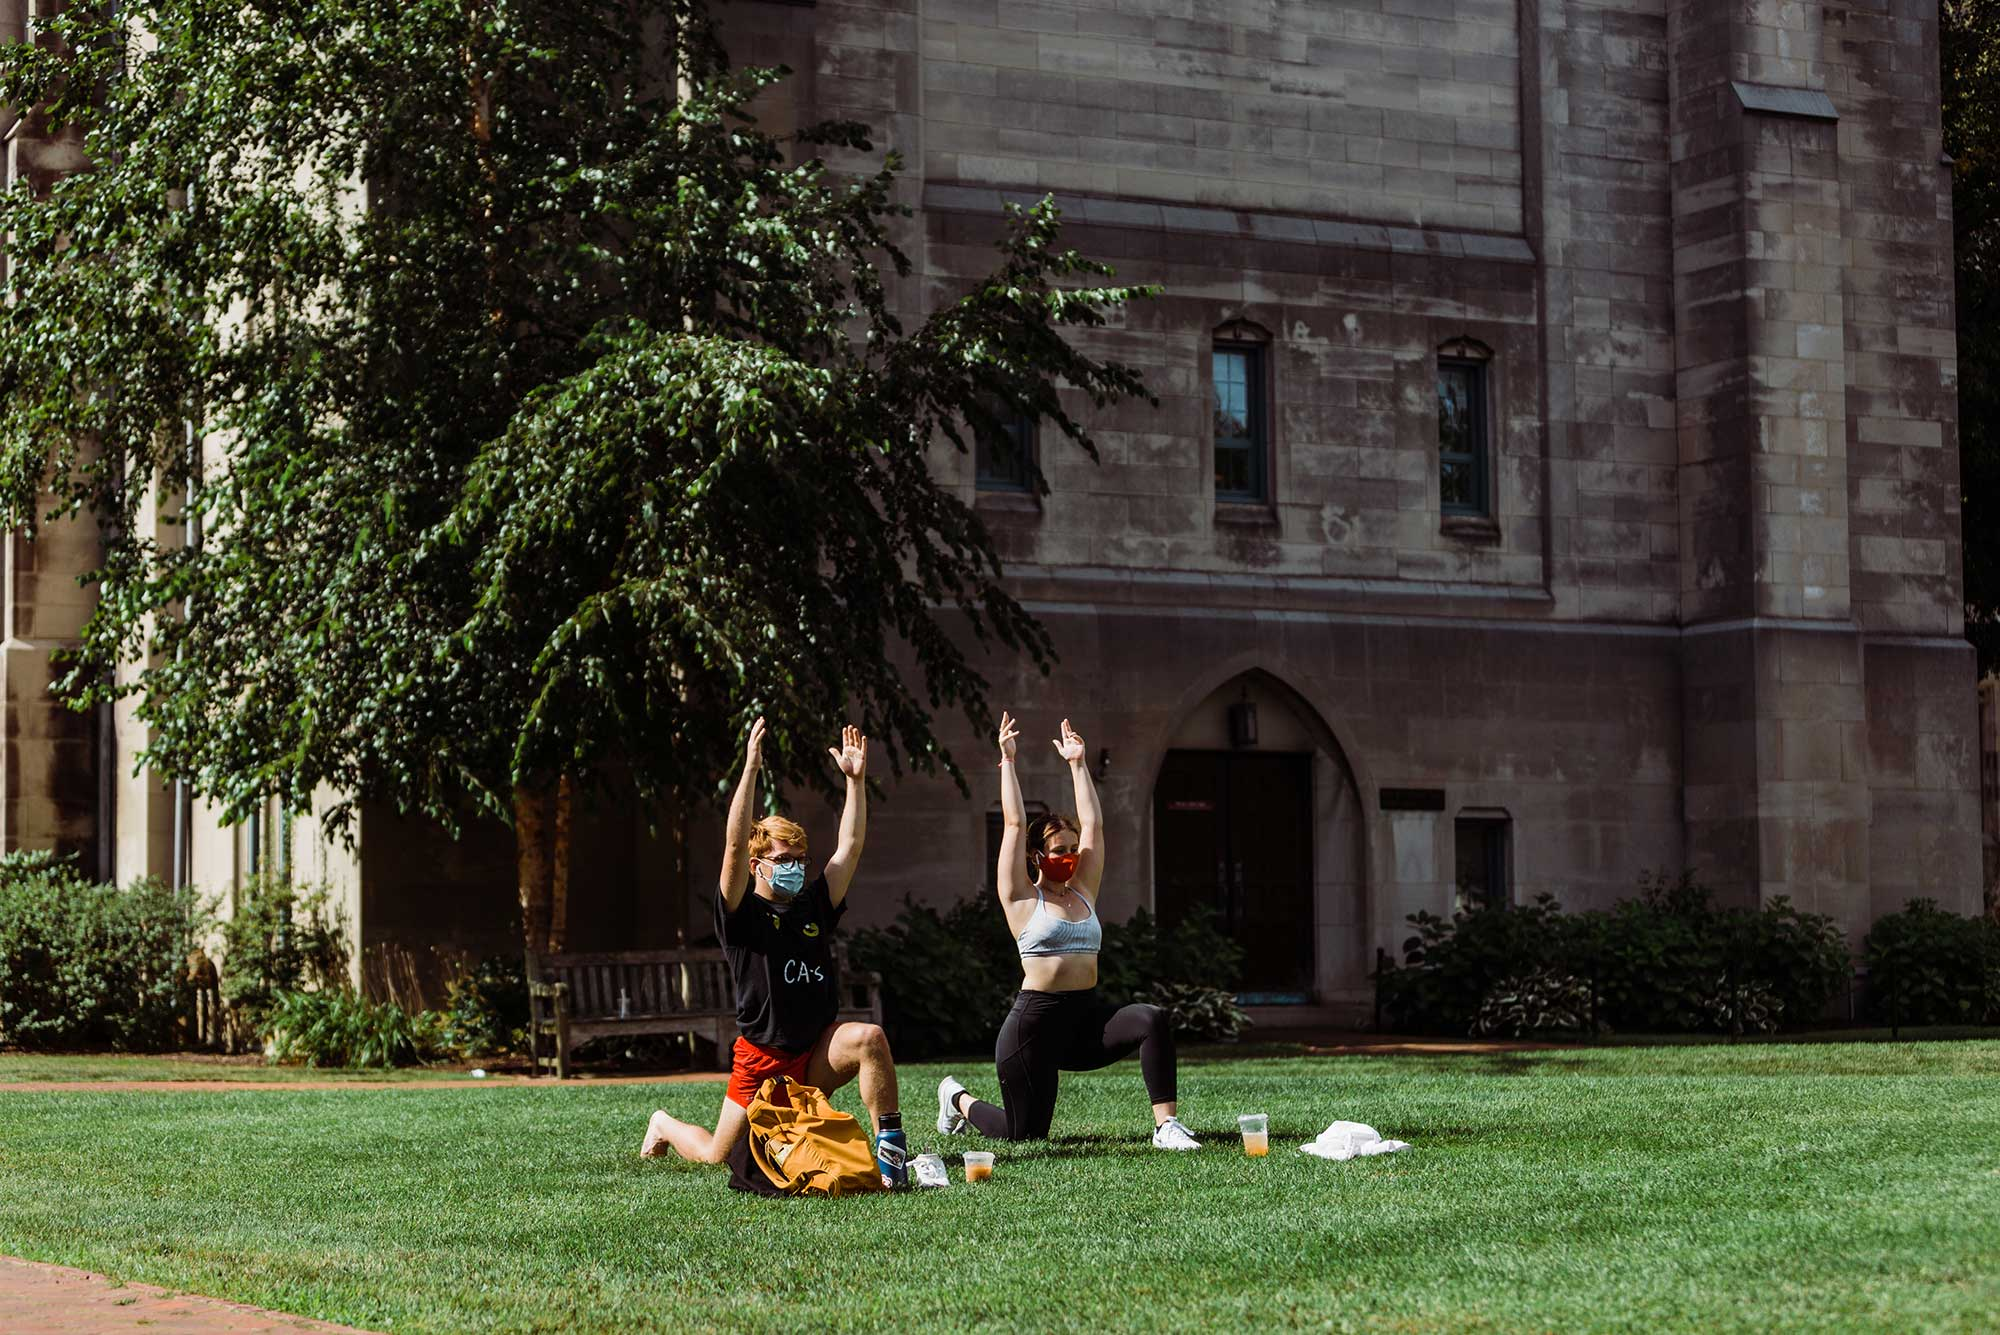 BU Administrators Add Two Wellness Days to This Semester's